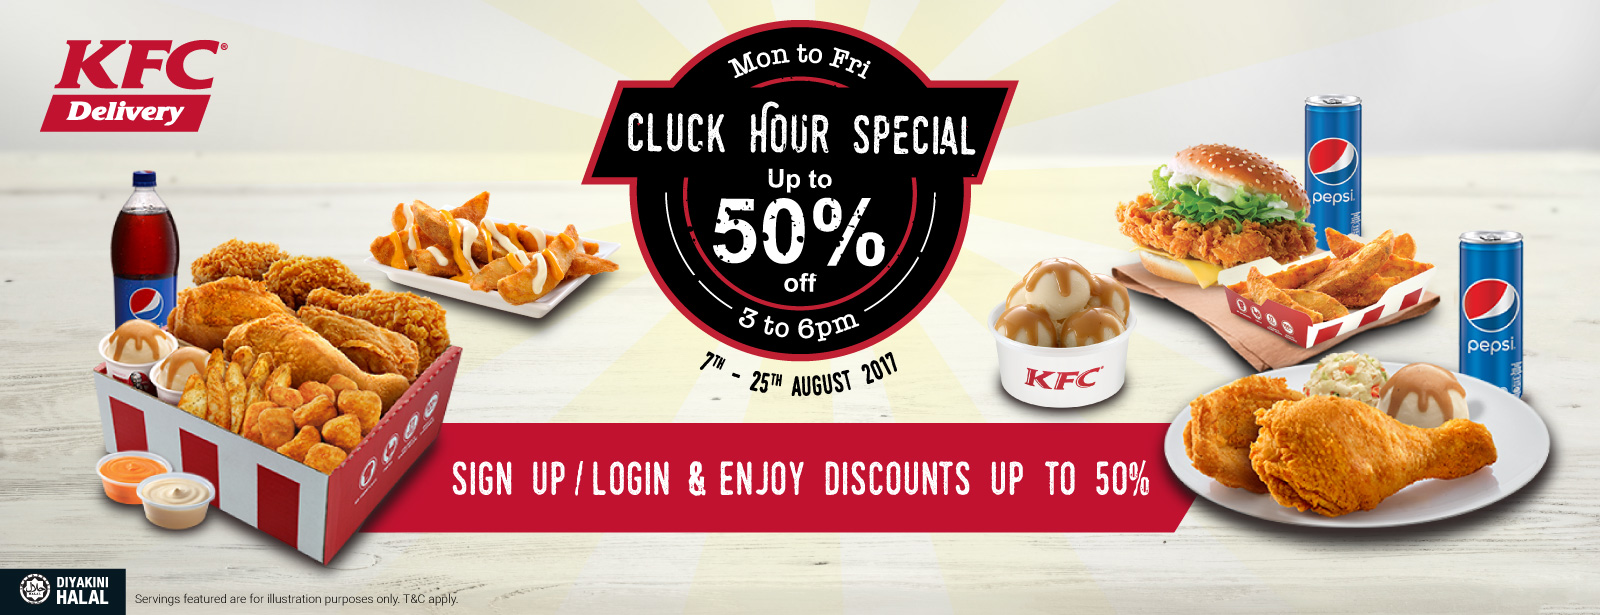 Kfc Malaysia Delivery Promotion Cluck Hour Special August 2017